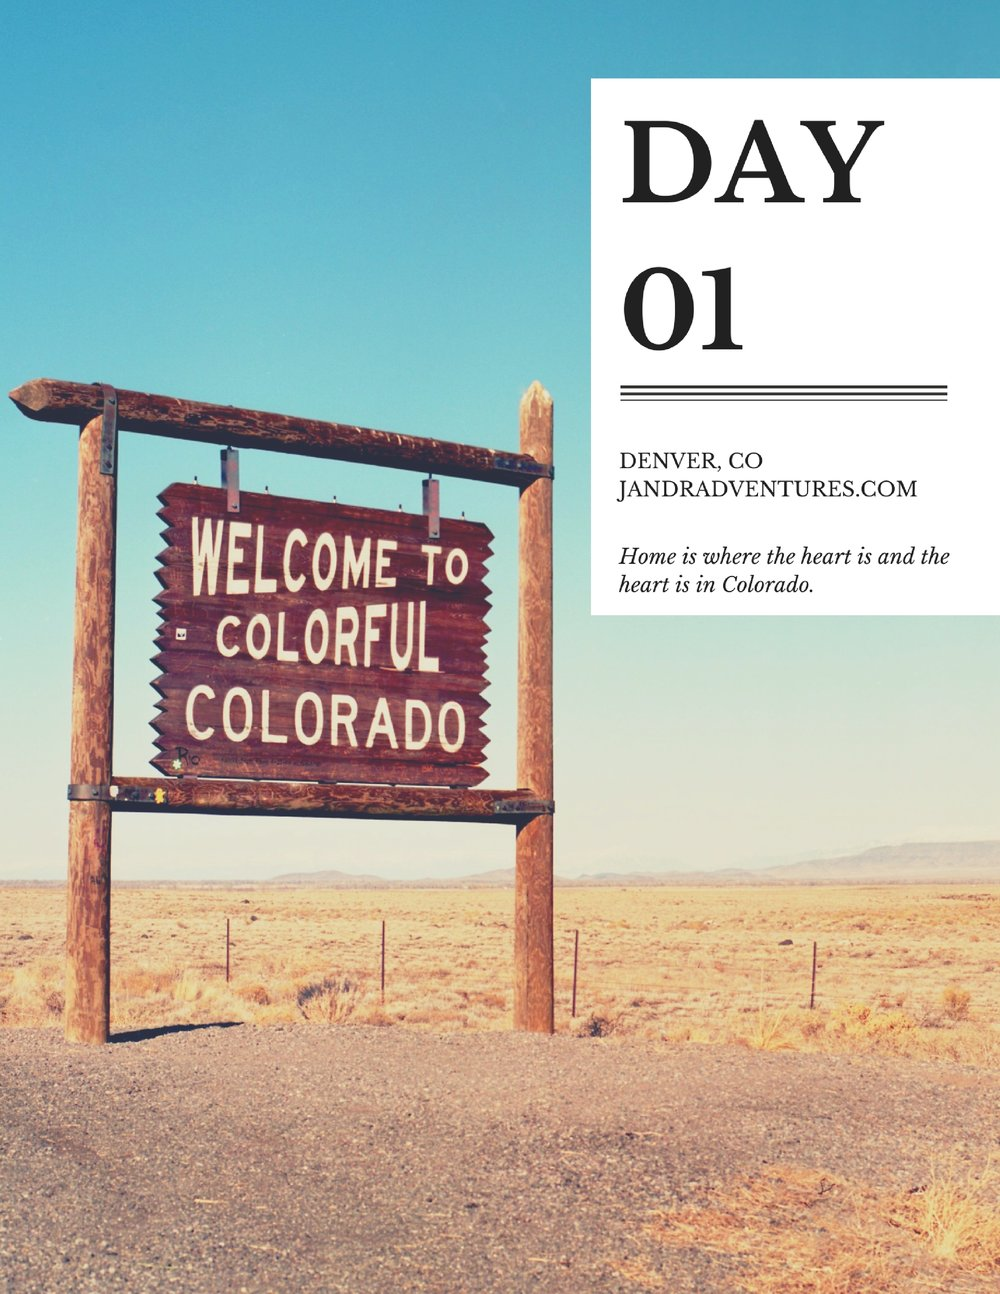 denver, co 3 day detailed itinerary(6).jpg